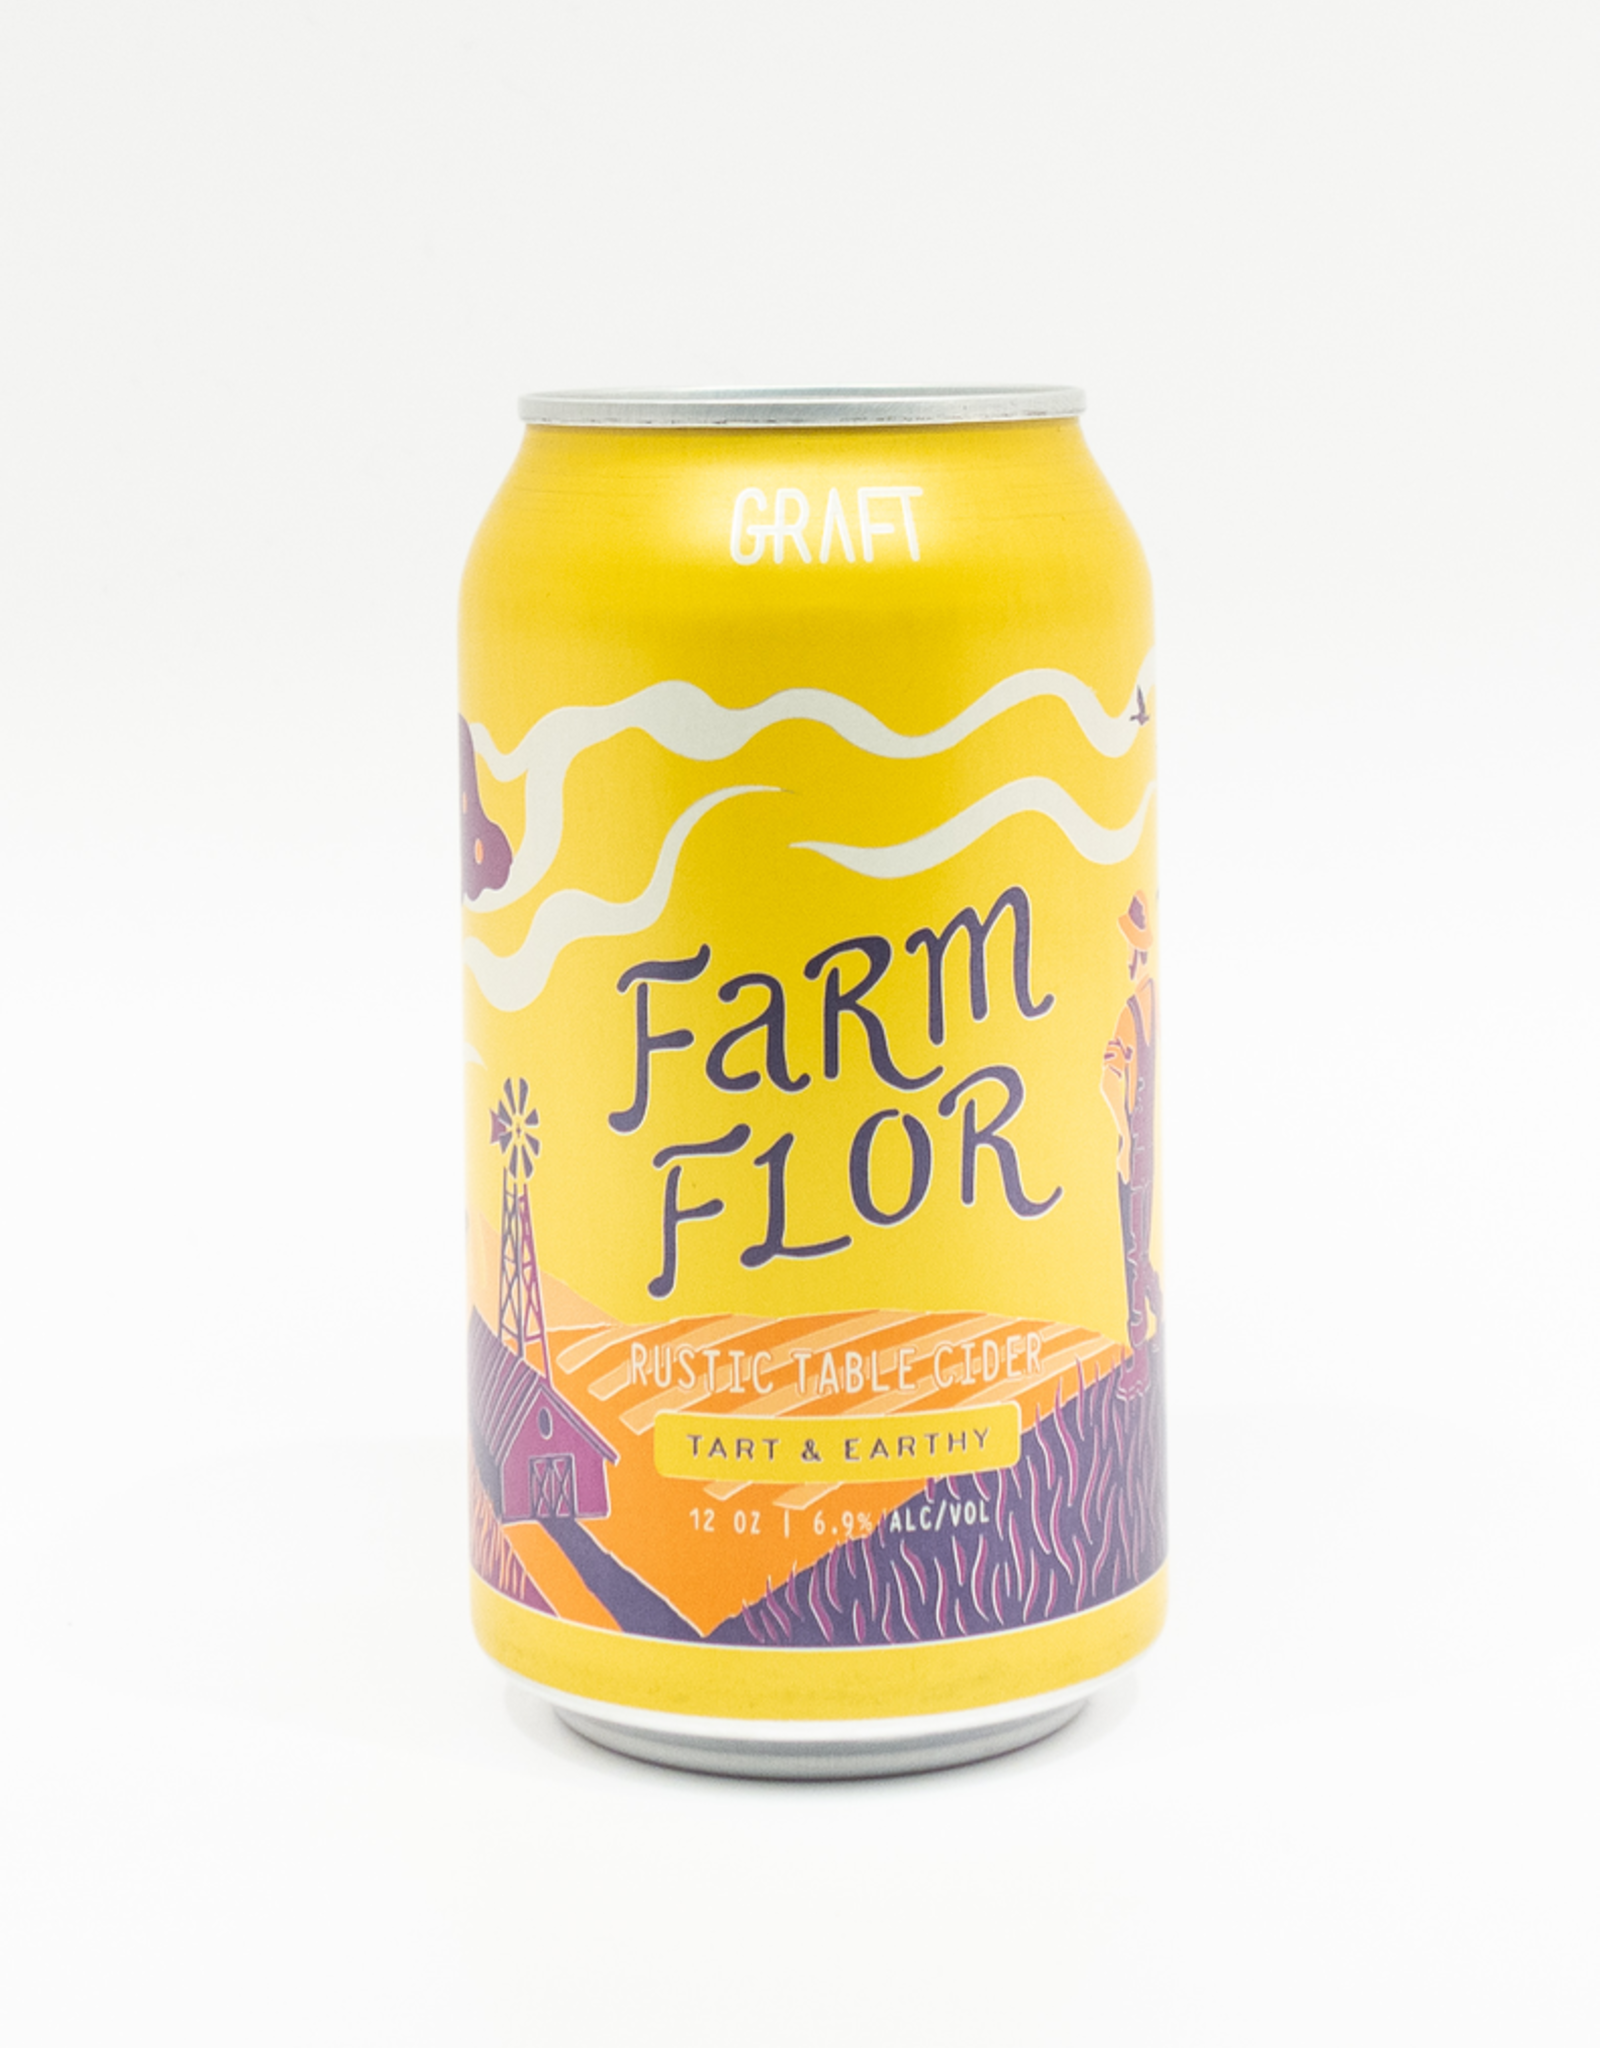 Cider-US-New York State Graft Farm Flor Rustic Cider Can 12oz